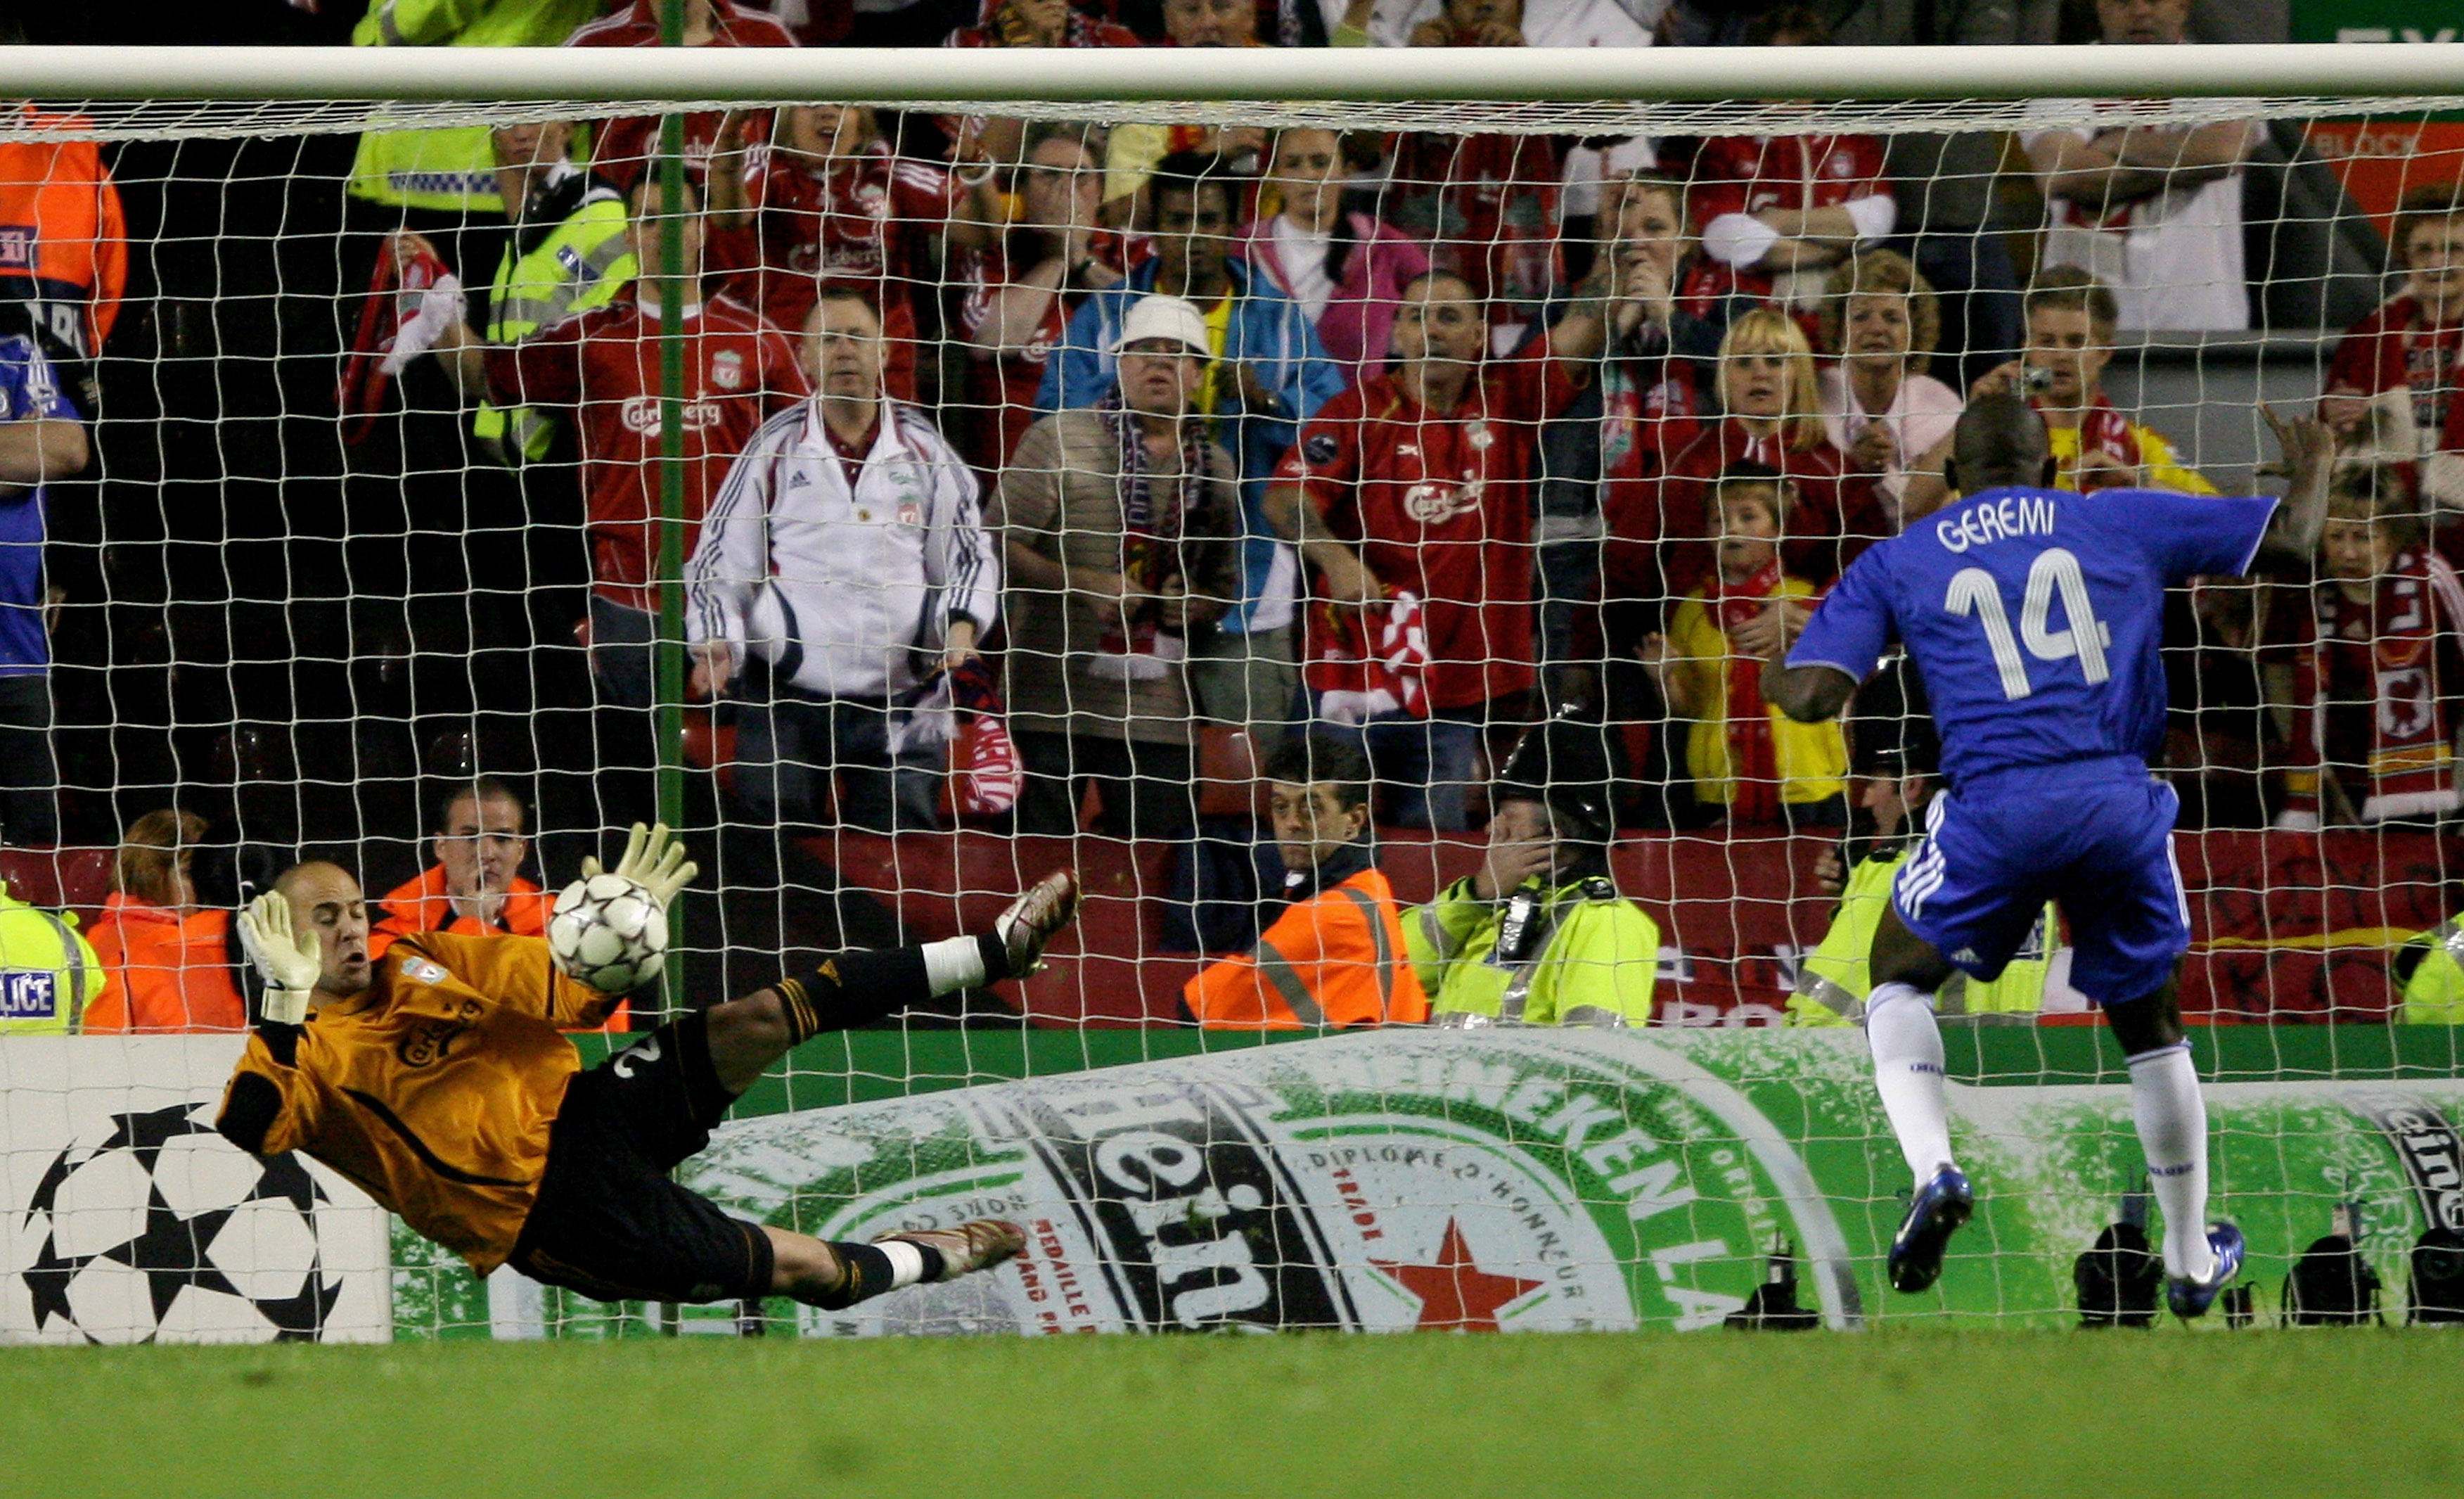 LIVERPOOL, UNITED KINGDOM - MAY 01:  Pepe Reina of Liverpool saves the penalty from Geremi (#14) of Chelsea during the UEFA Champions League semi final second leg match between Liverpool and Chelsea at Anfield on May 1, 2007 in Liverpool, England.  (Photo